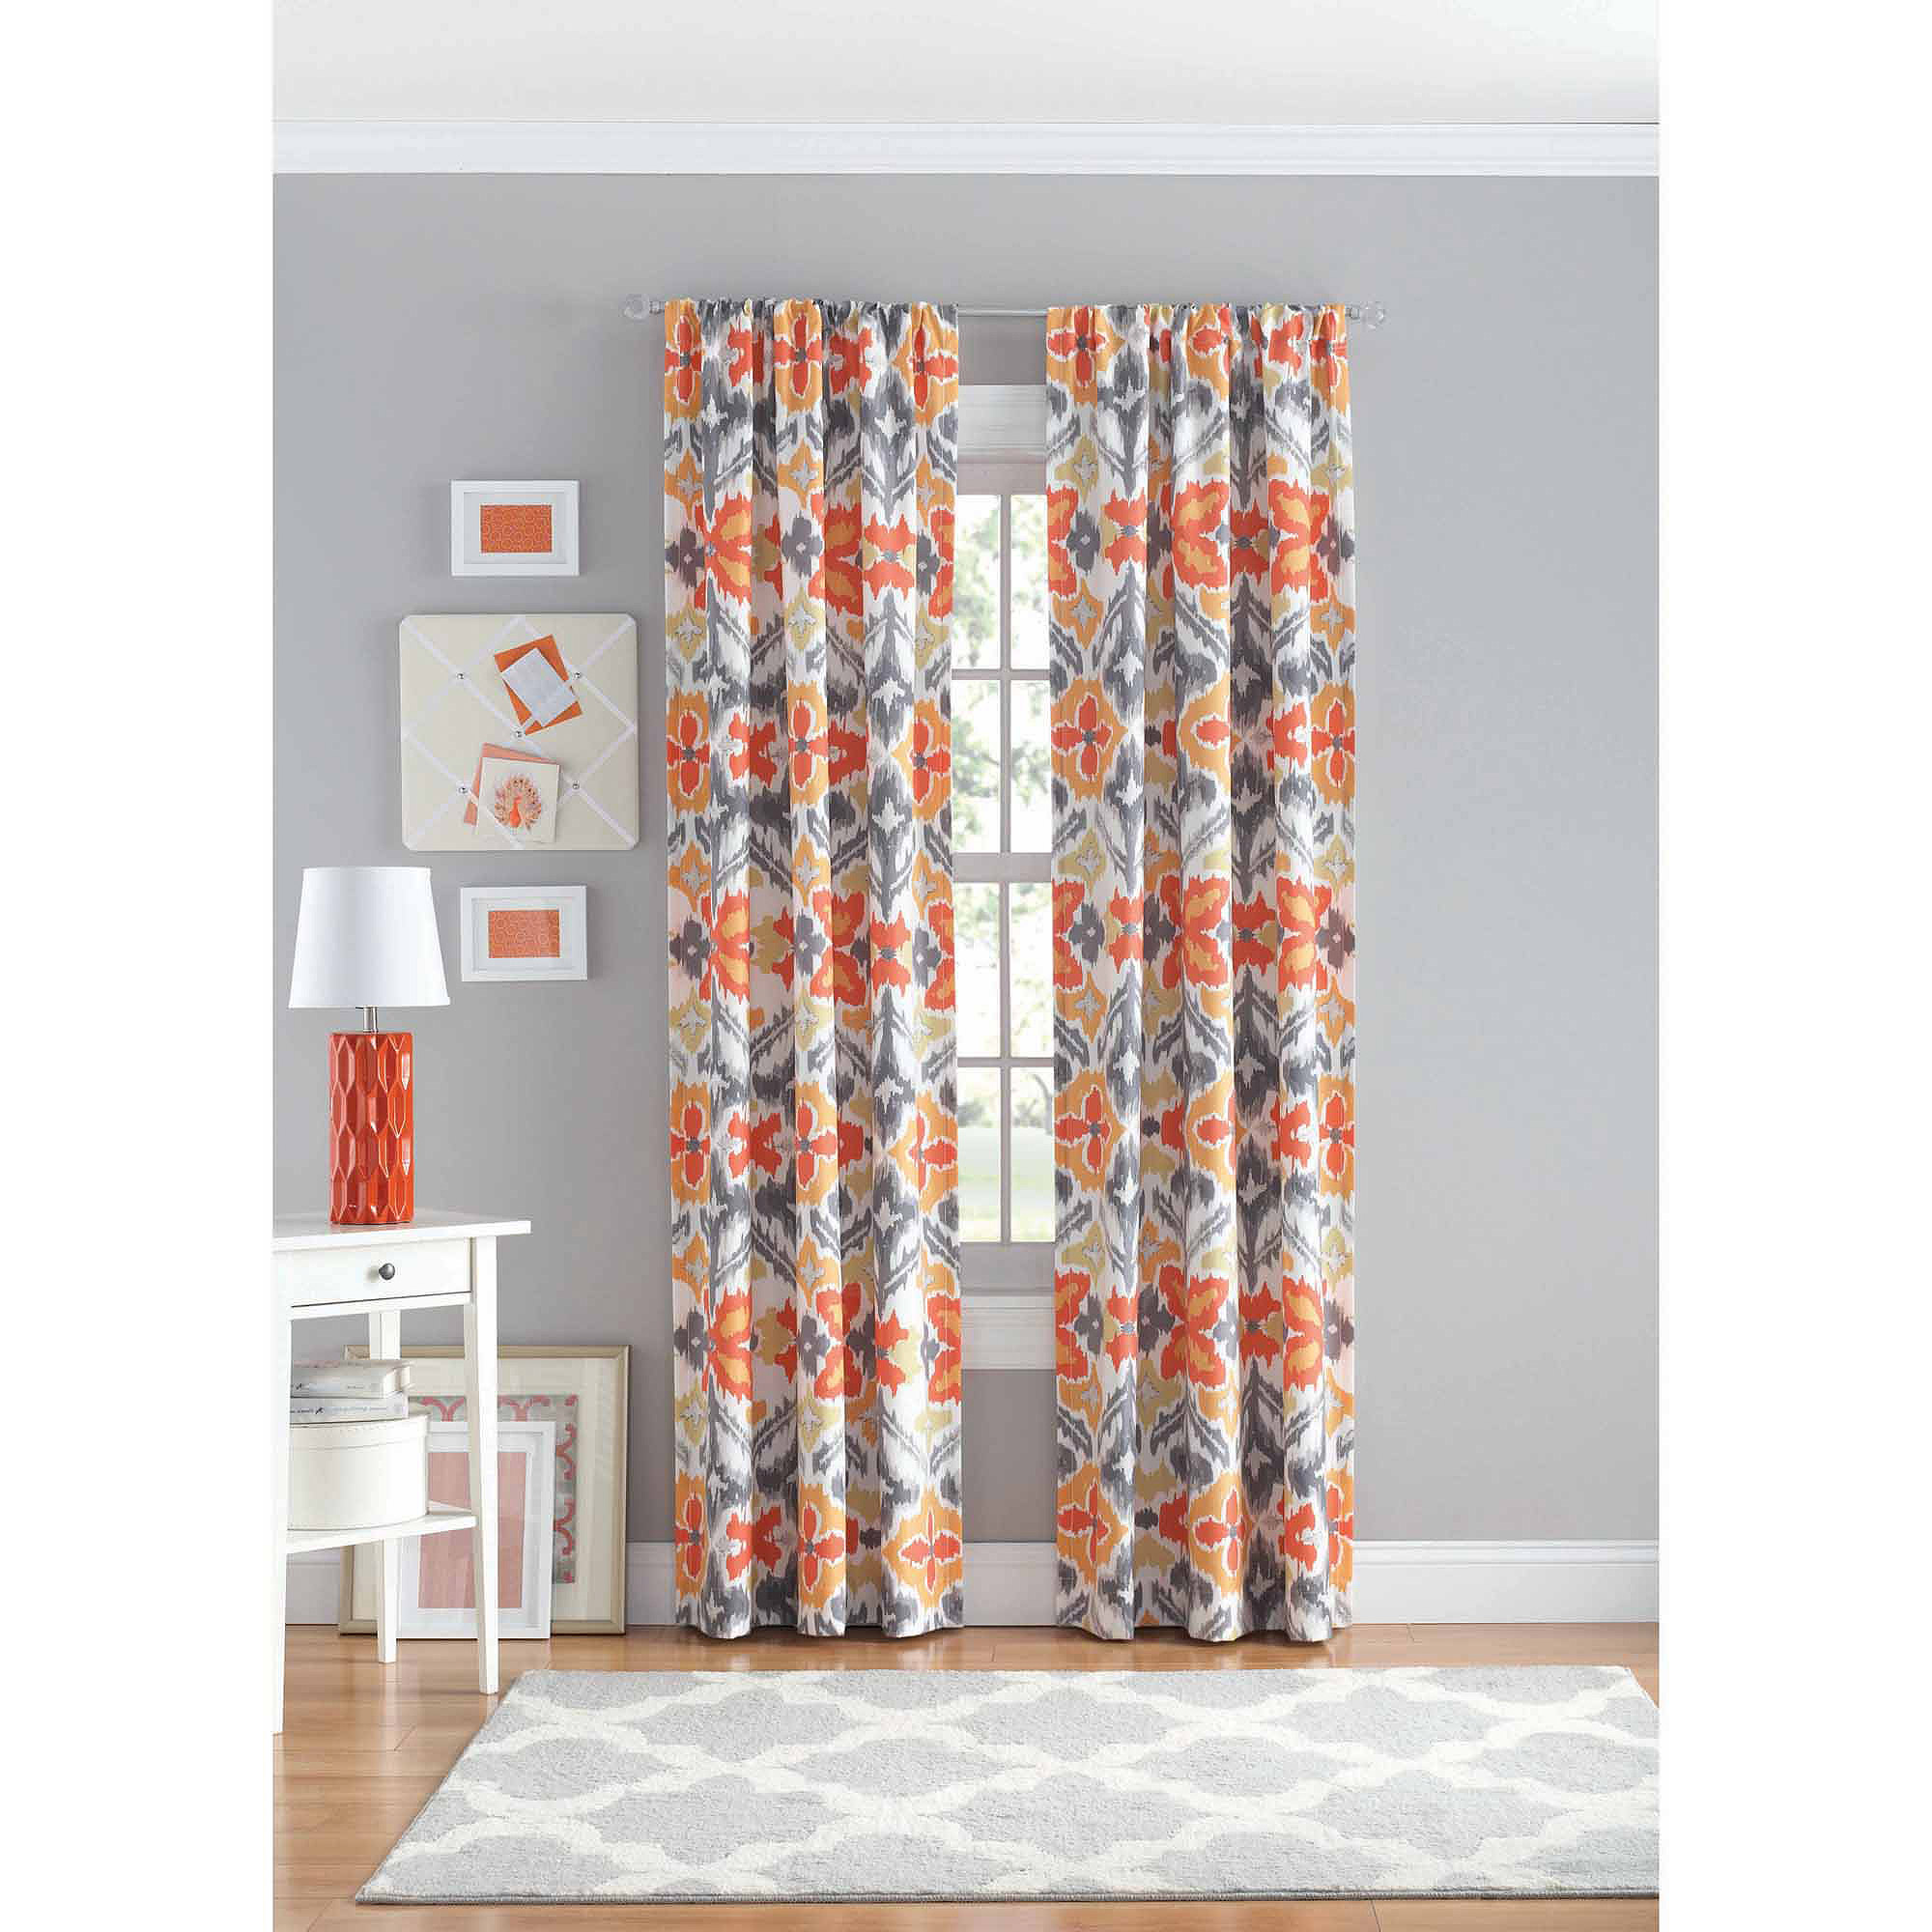 Your Zone Ikat Bedroom Curtain Panel